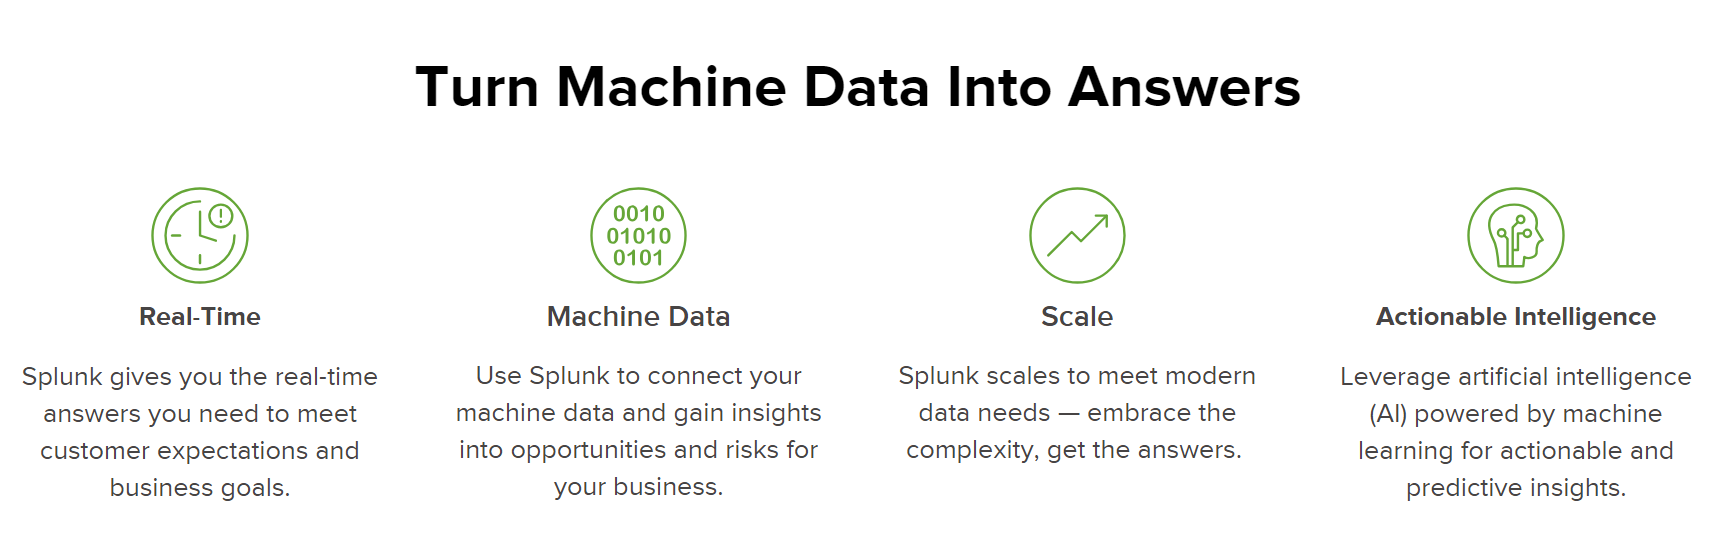 Splunk turns machine data into answers